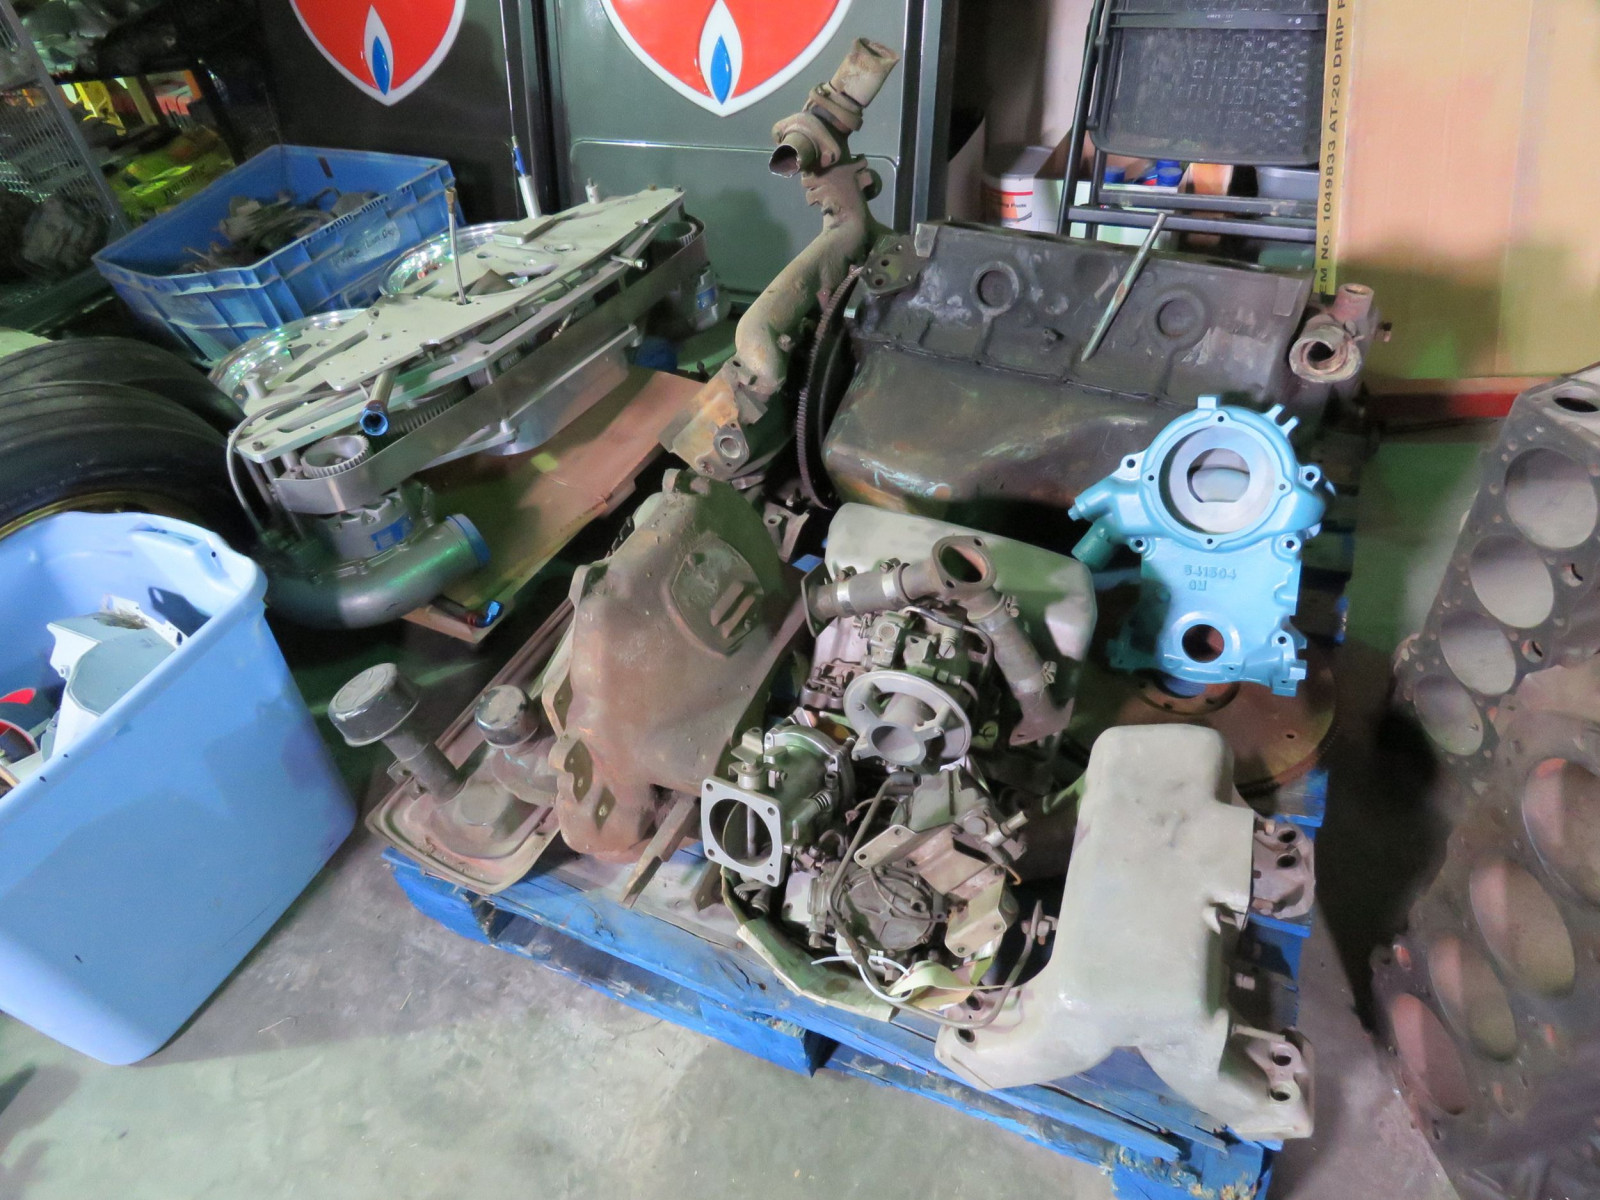 1958 Pontiac 258 370 CU Motor with Rare Fuel Injection Project - Image 1